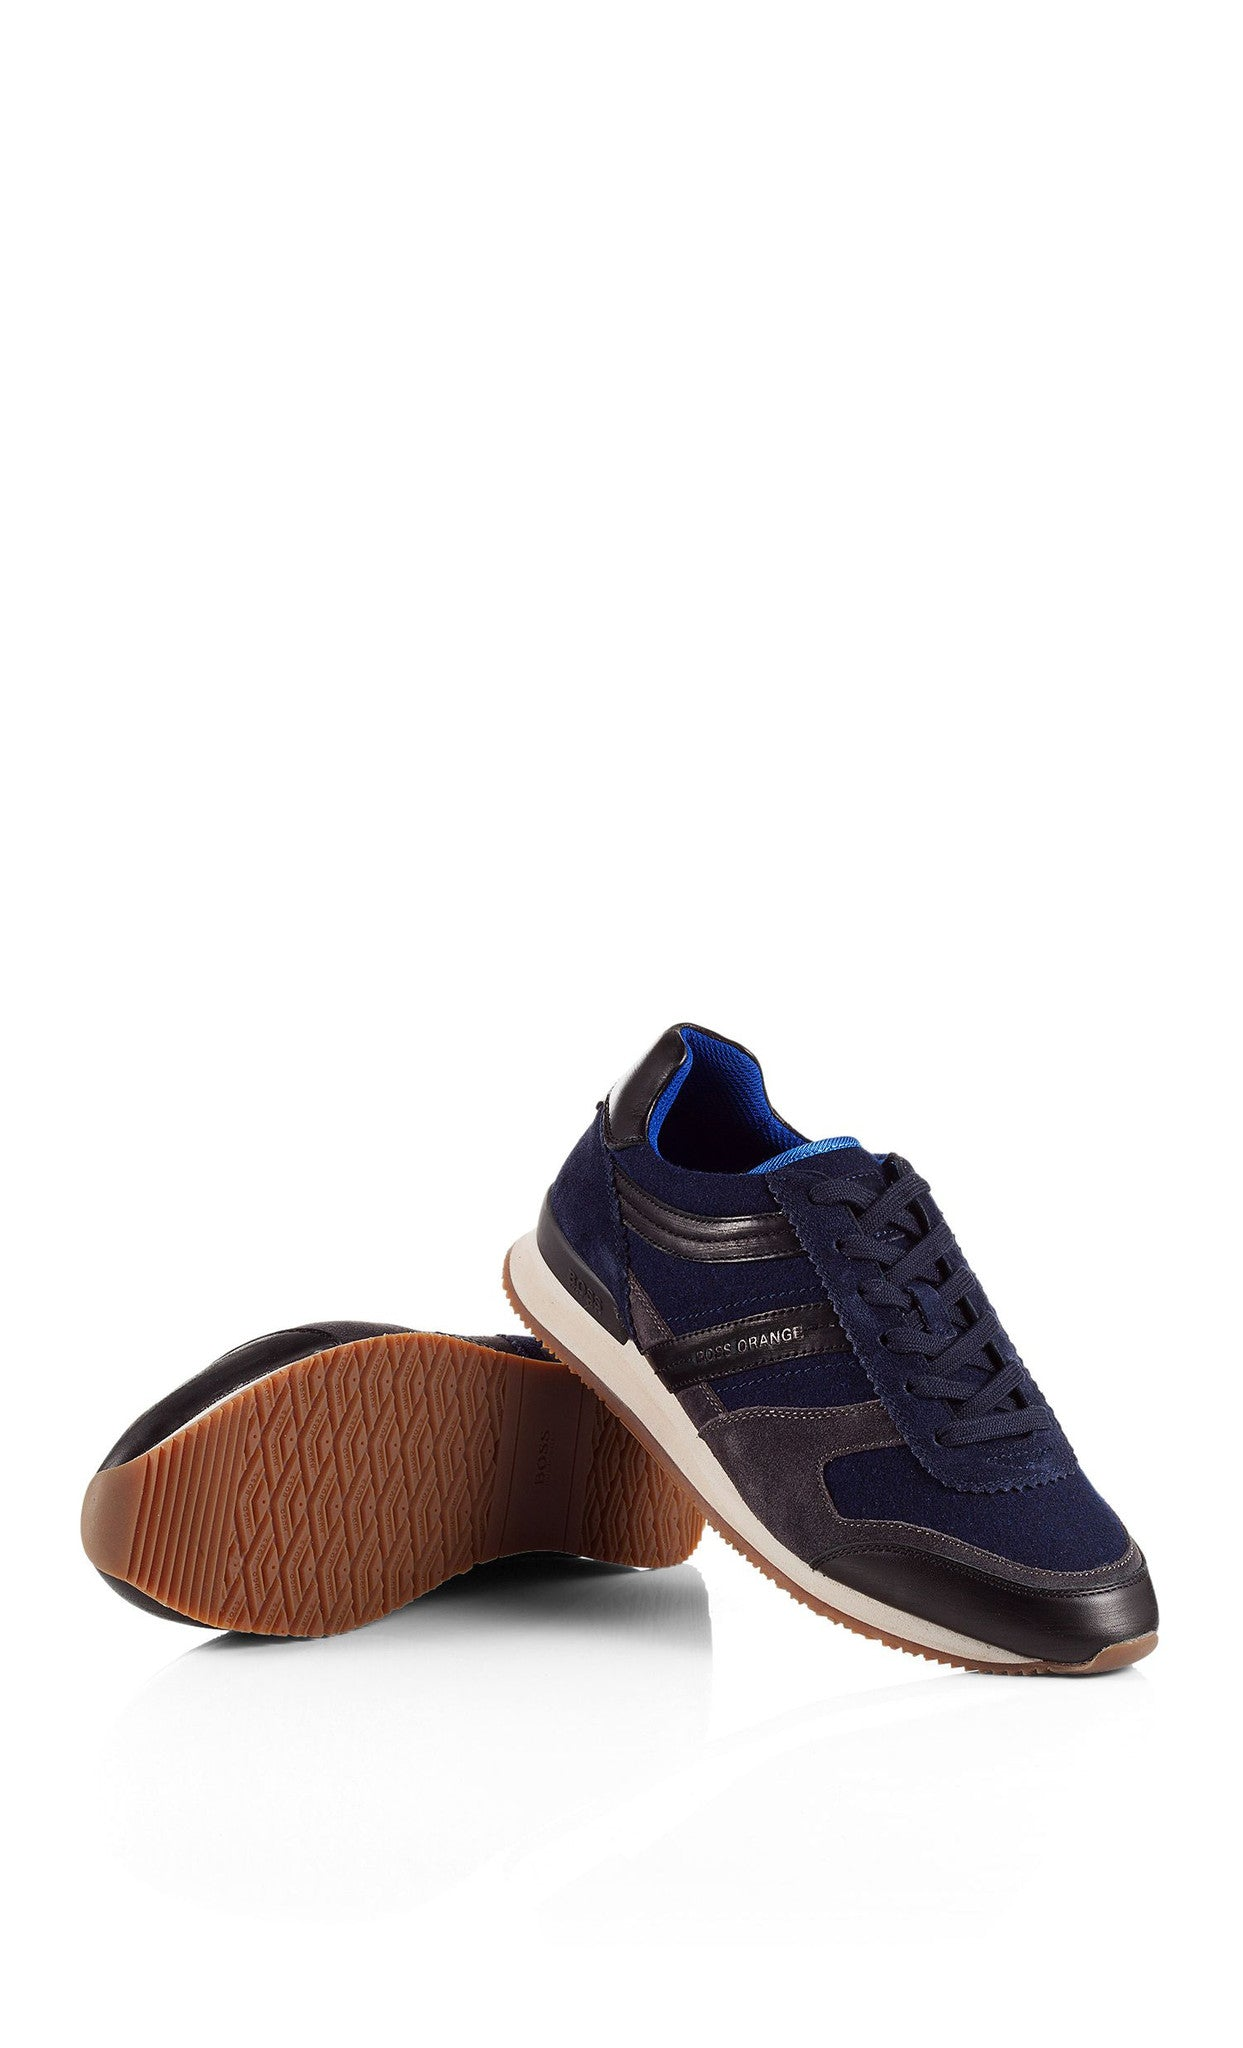 Hugo Boss Orange Adrenno Sneaker in Dark Blue 50273321